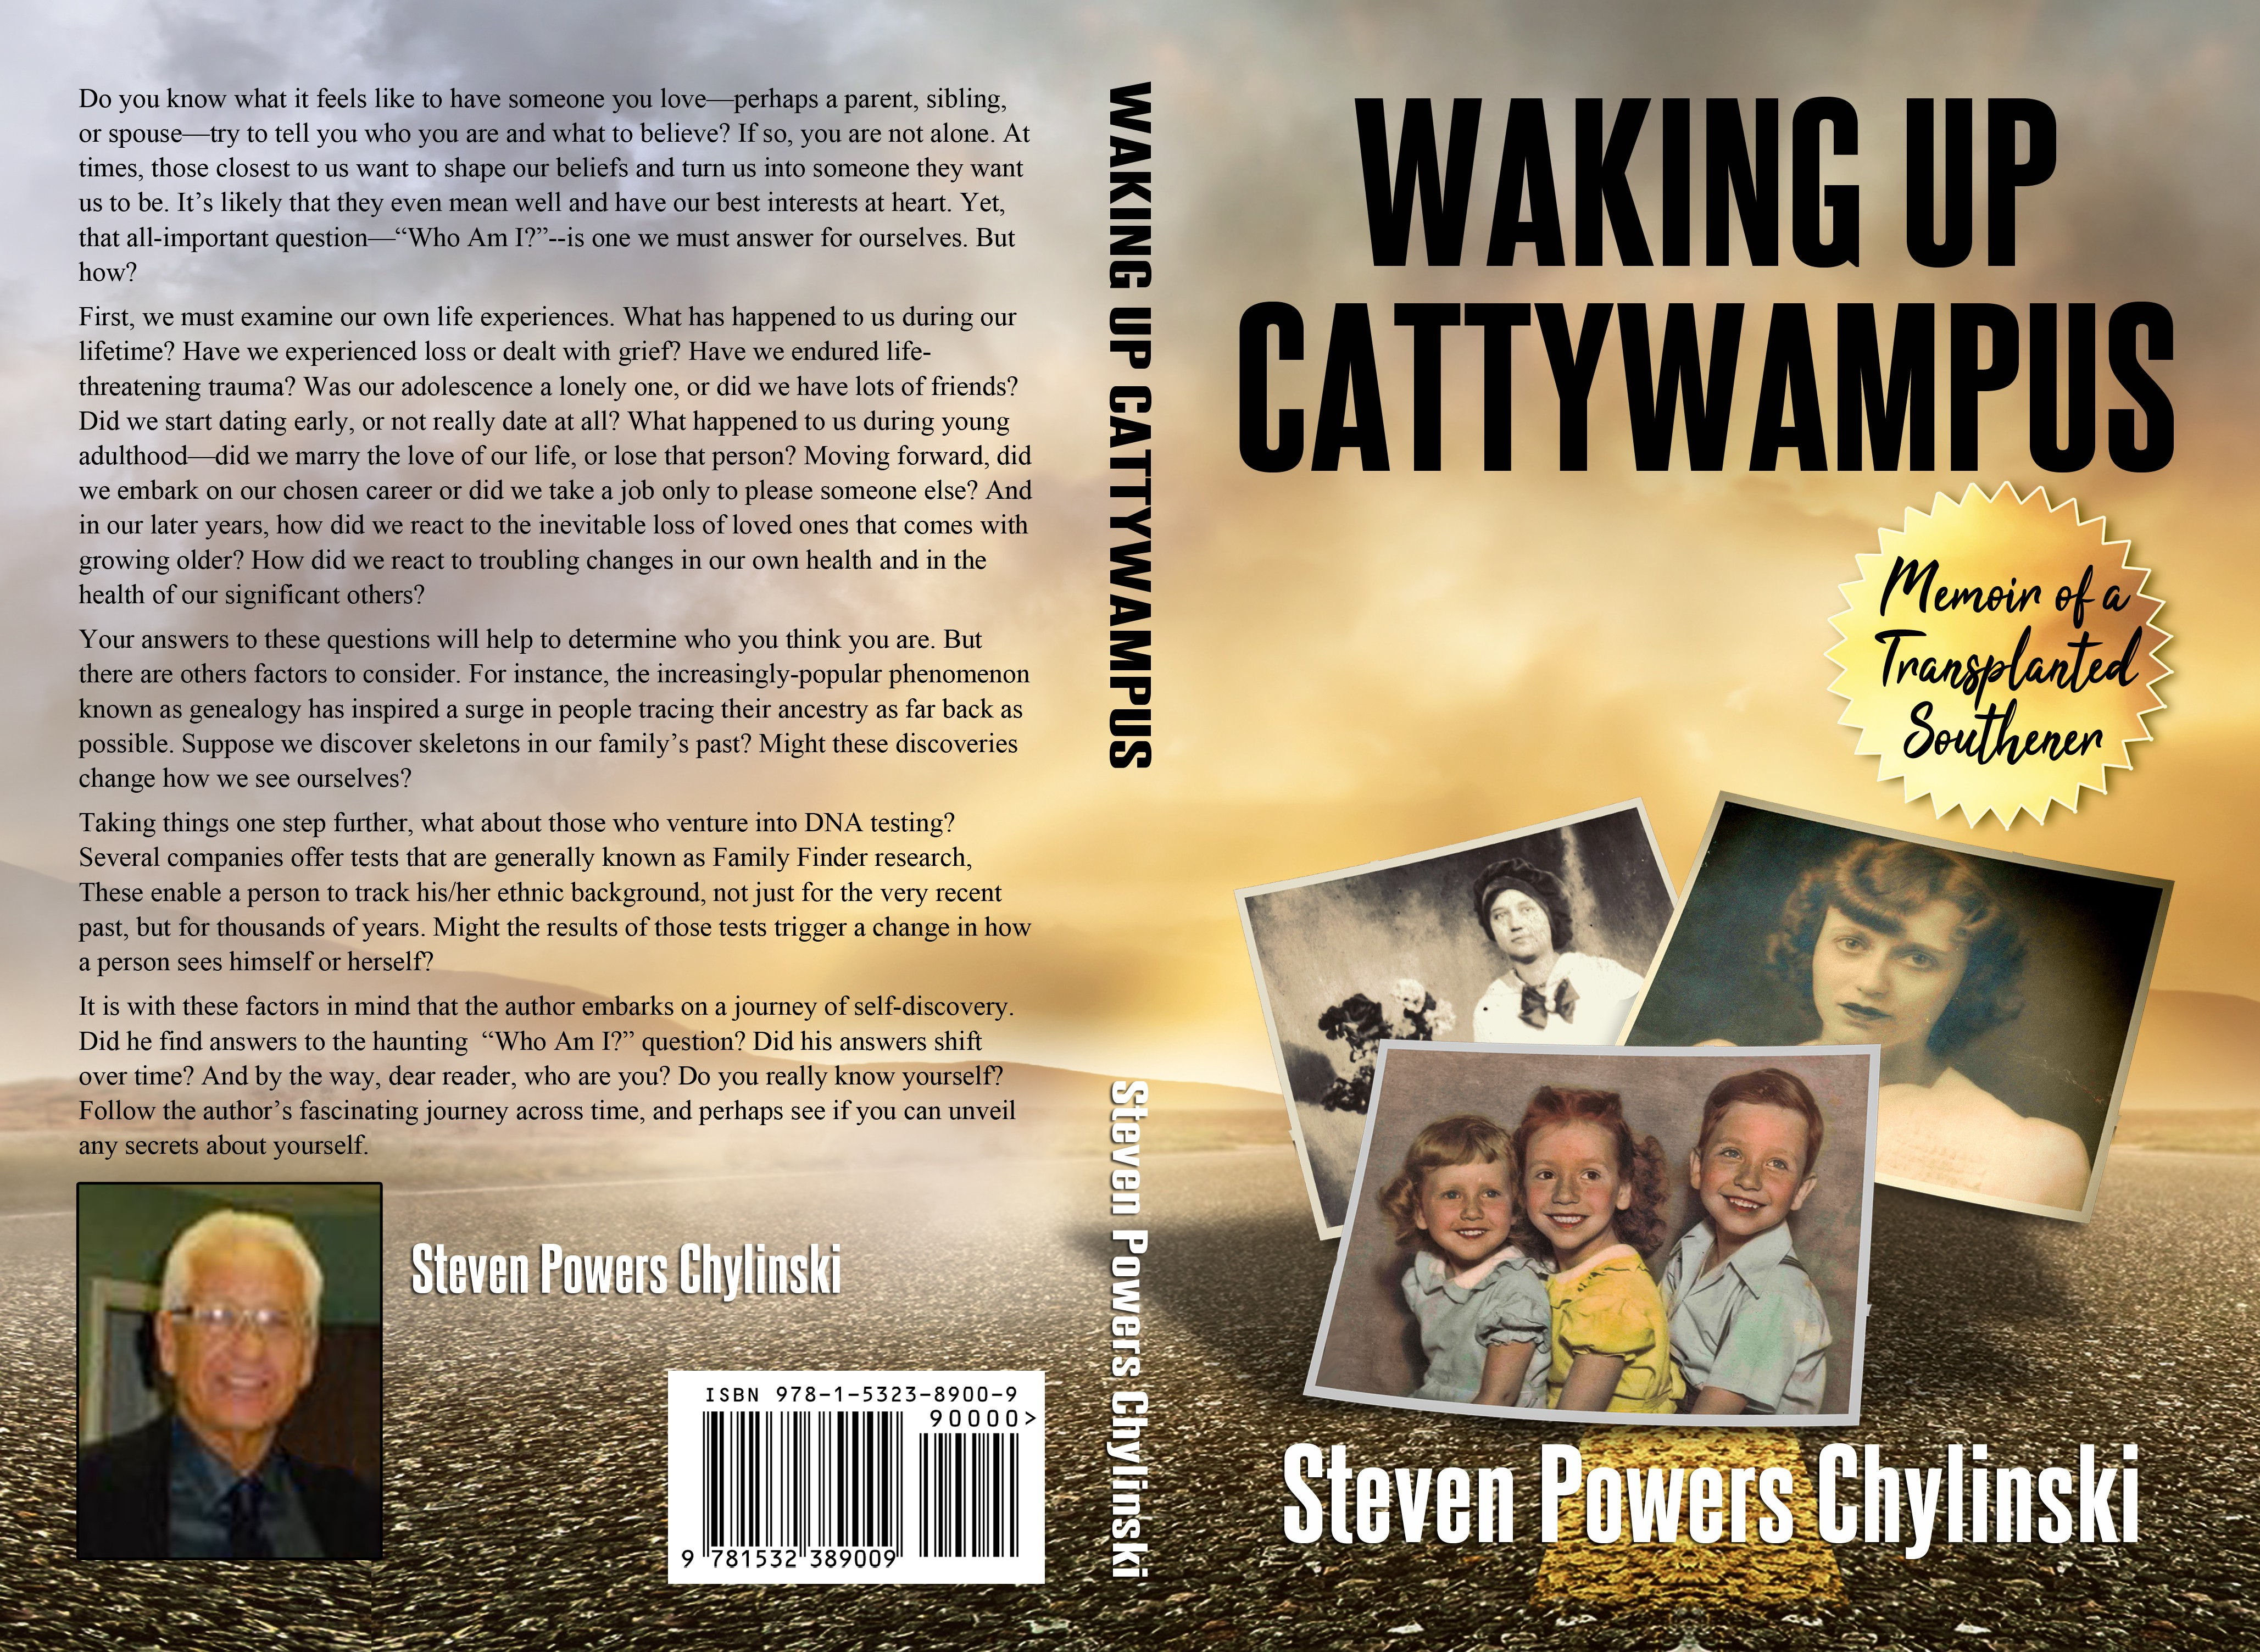 Wakin' Up Cattywampus: Memoir of a Transplanted Southerner